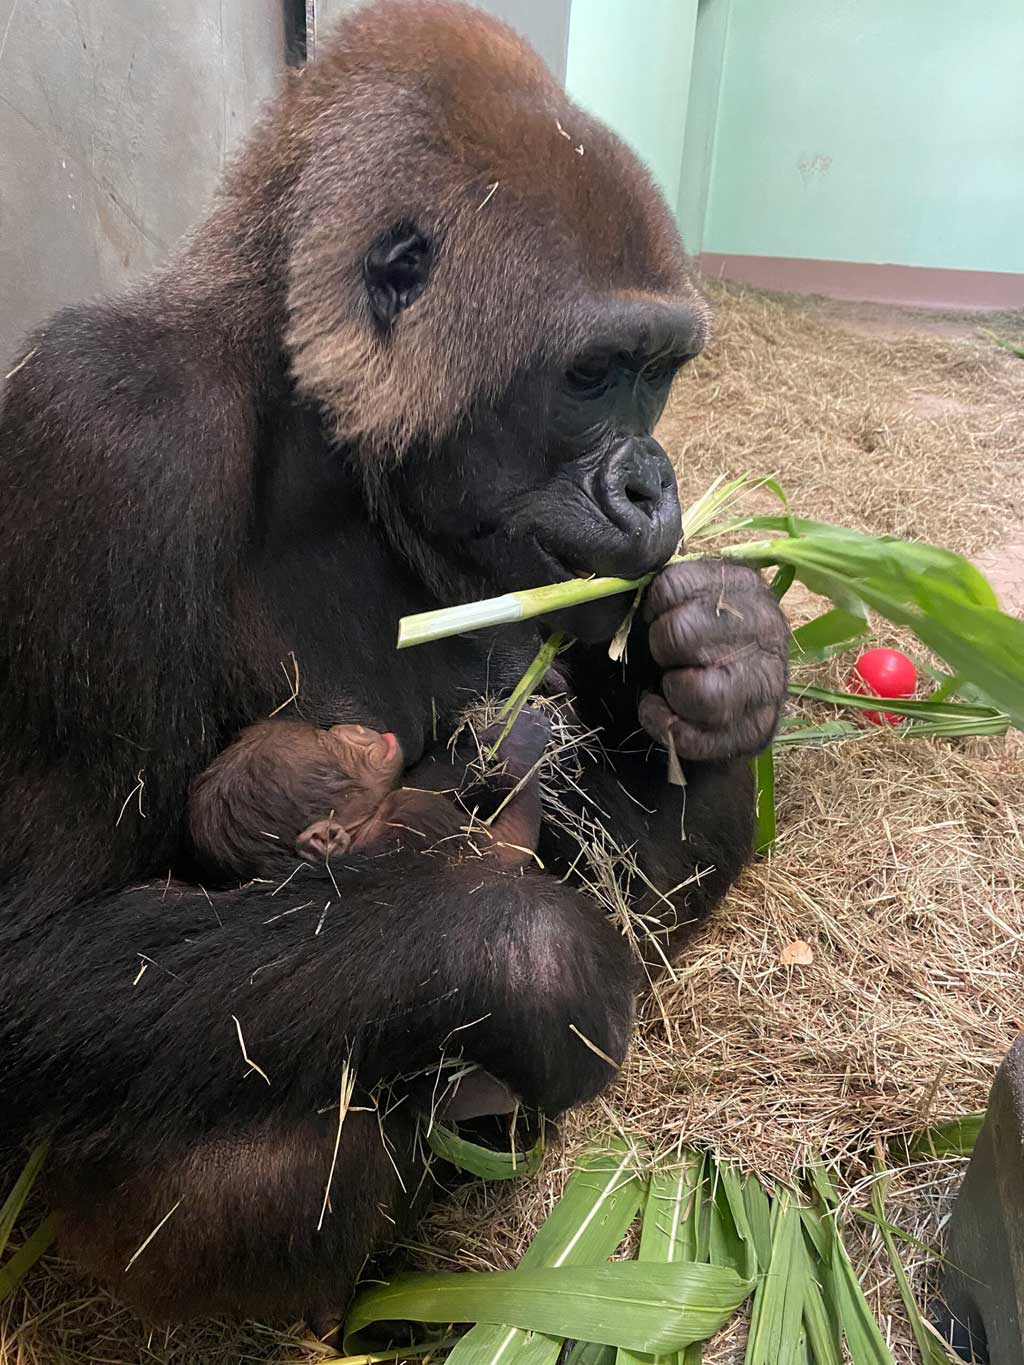 A western lowland gorilla was born July 13, 2021, at Disney's Animal Kingdom Theme Park at Walt Disney World Resort in Lake Buena Vista, Fla. The healthy infant was born backstage to mom Azizi and dad Gino, and may now be spotted inside the park at Gorilla Falls Exploration Trail presented by OFF! Repellents, joining the entire family troop. The new arrival marks 12 gorillas currently in Disney's care. (Disney)